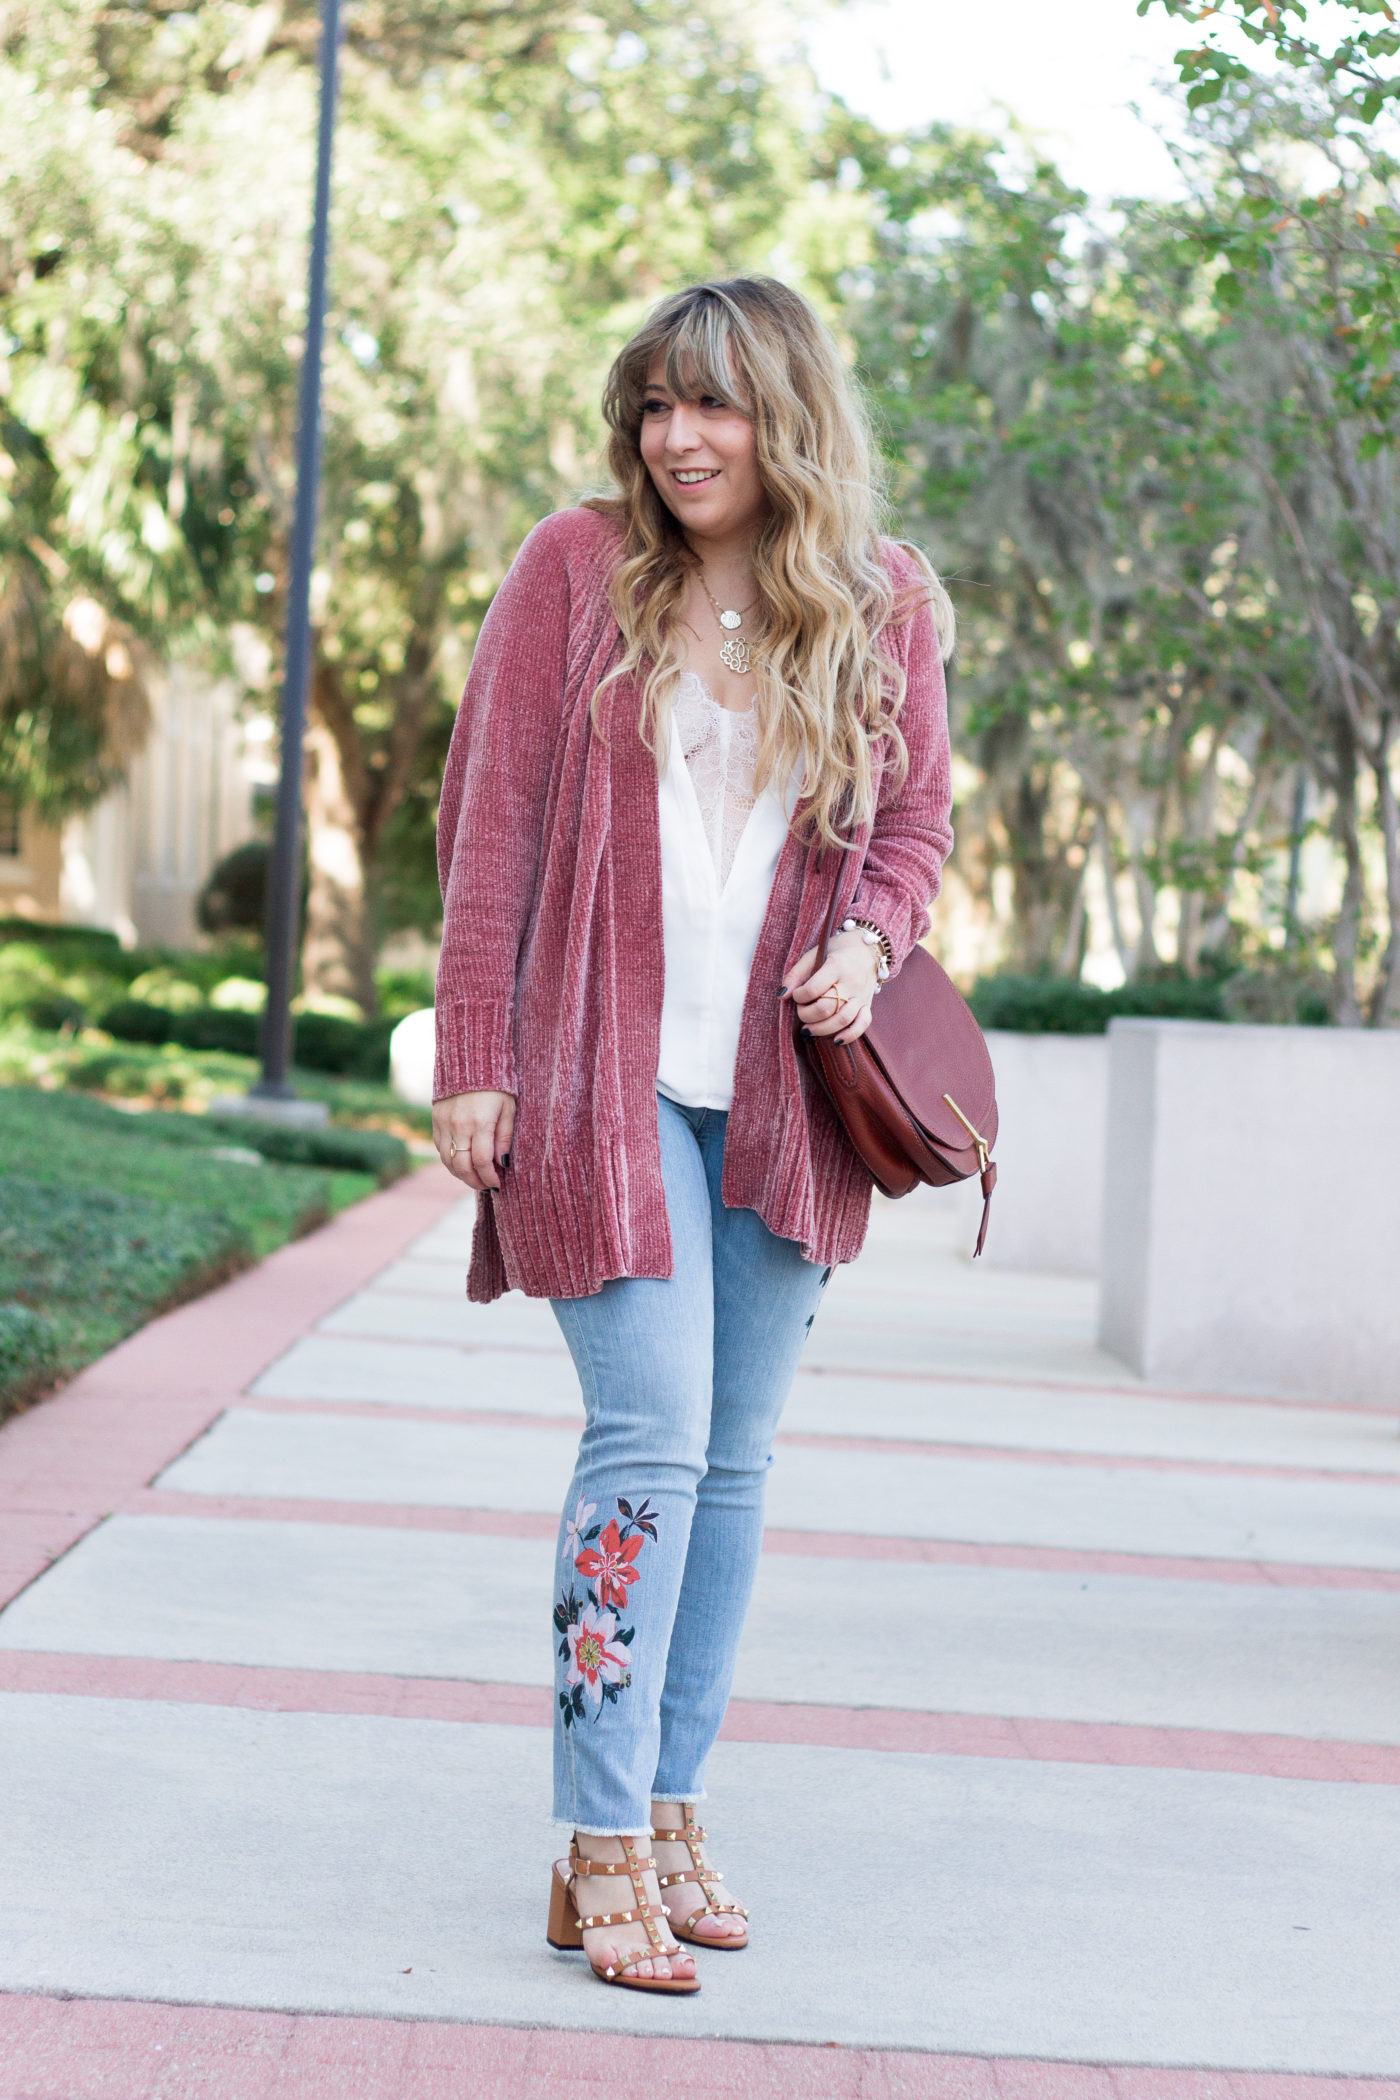 Floral jeans and cardigan outfit for fall